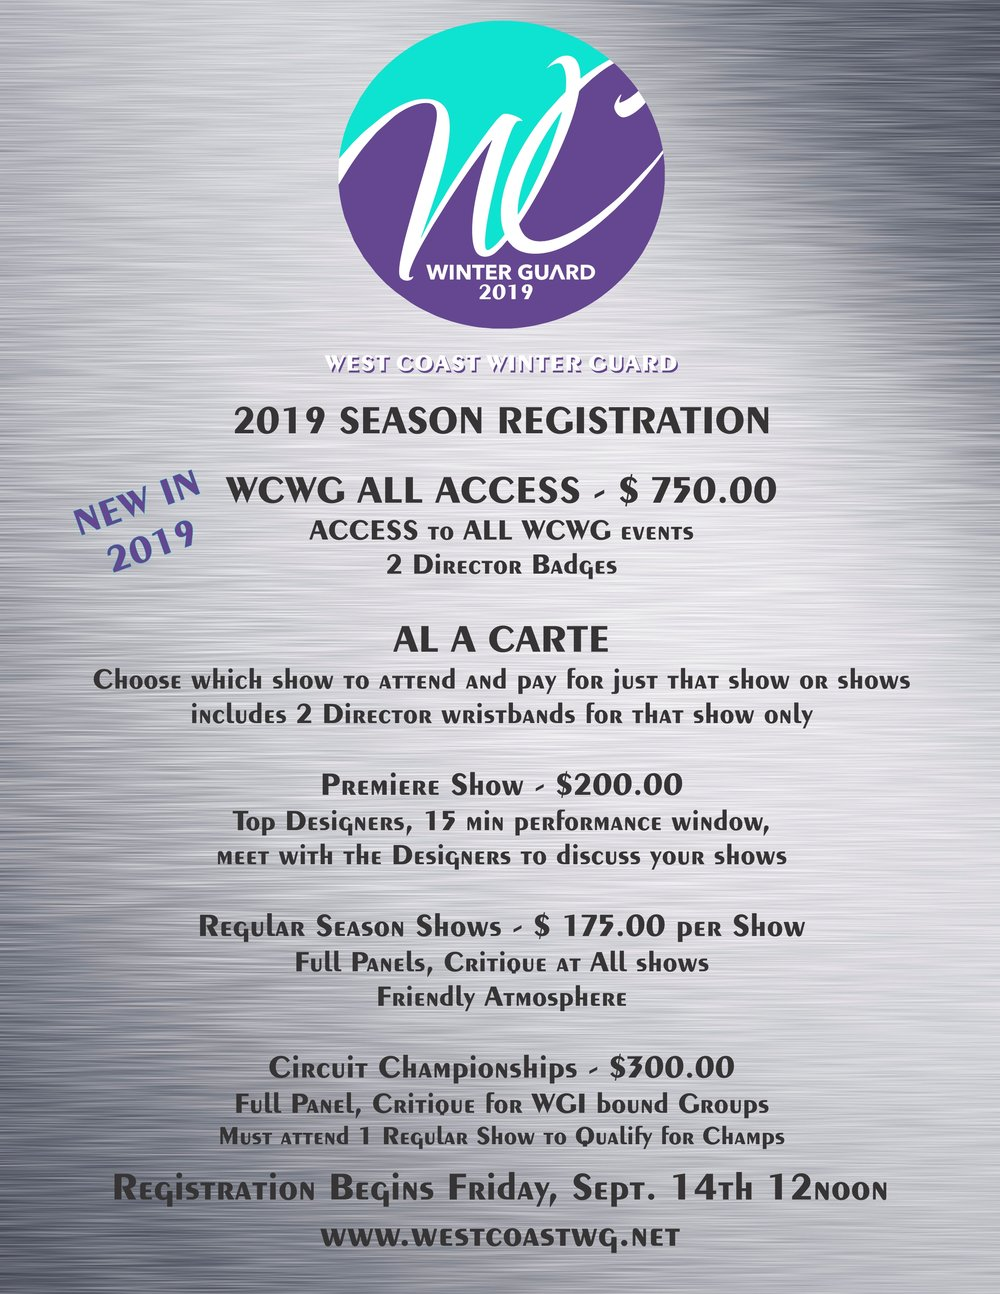 WCWG 2019 Registration Announcement.jpg